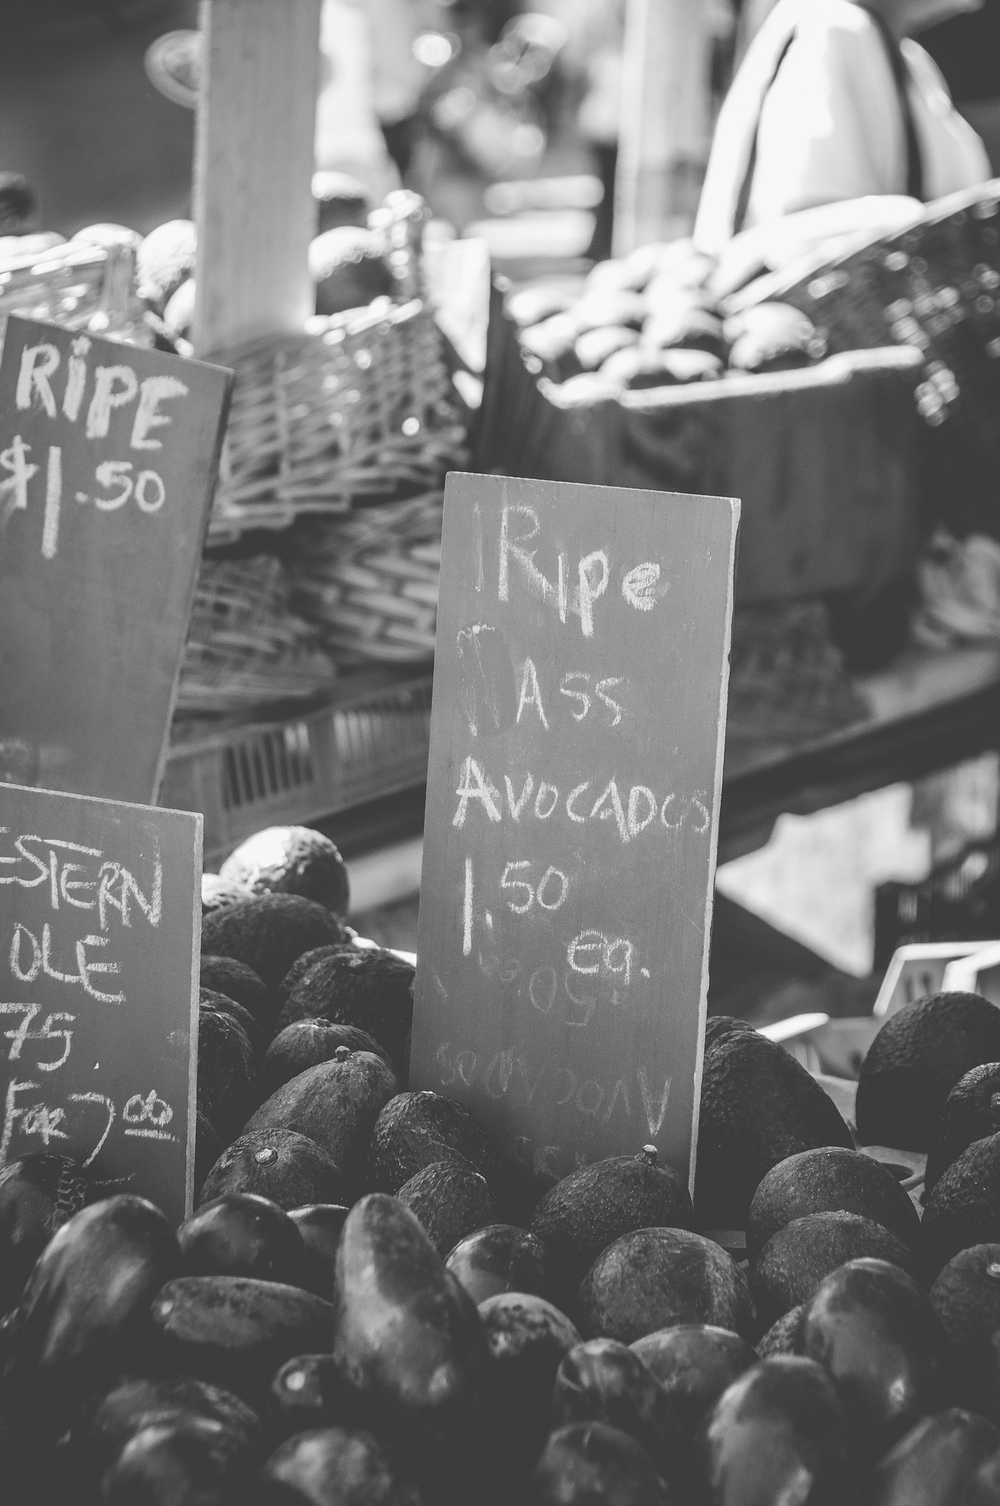 ... and saw some ripe ass avocados.